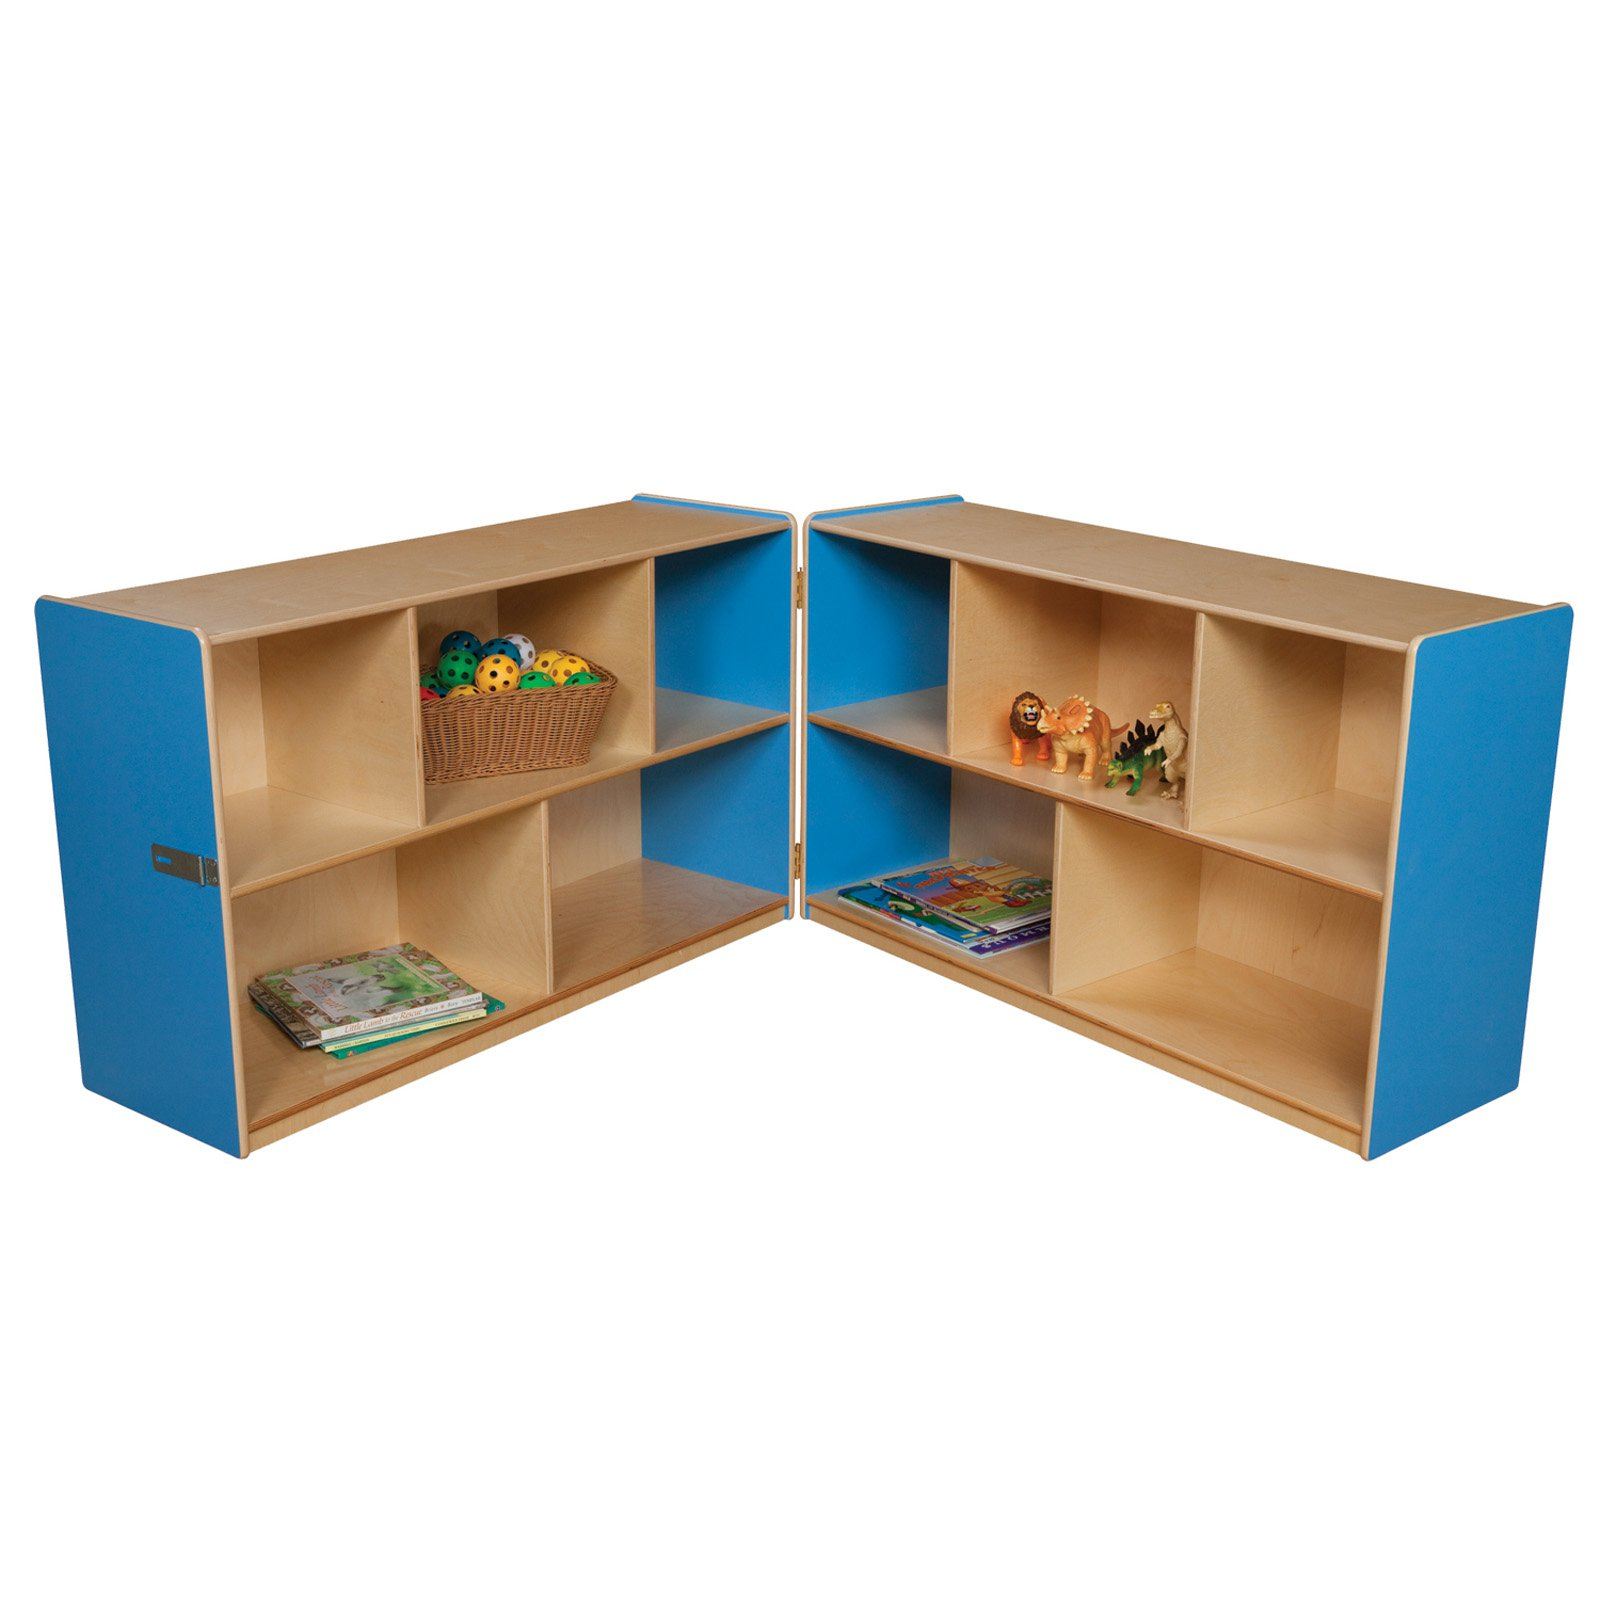 Wood Designs 30H in. Folding Storage